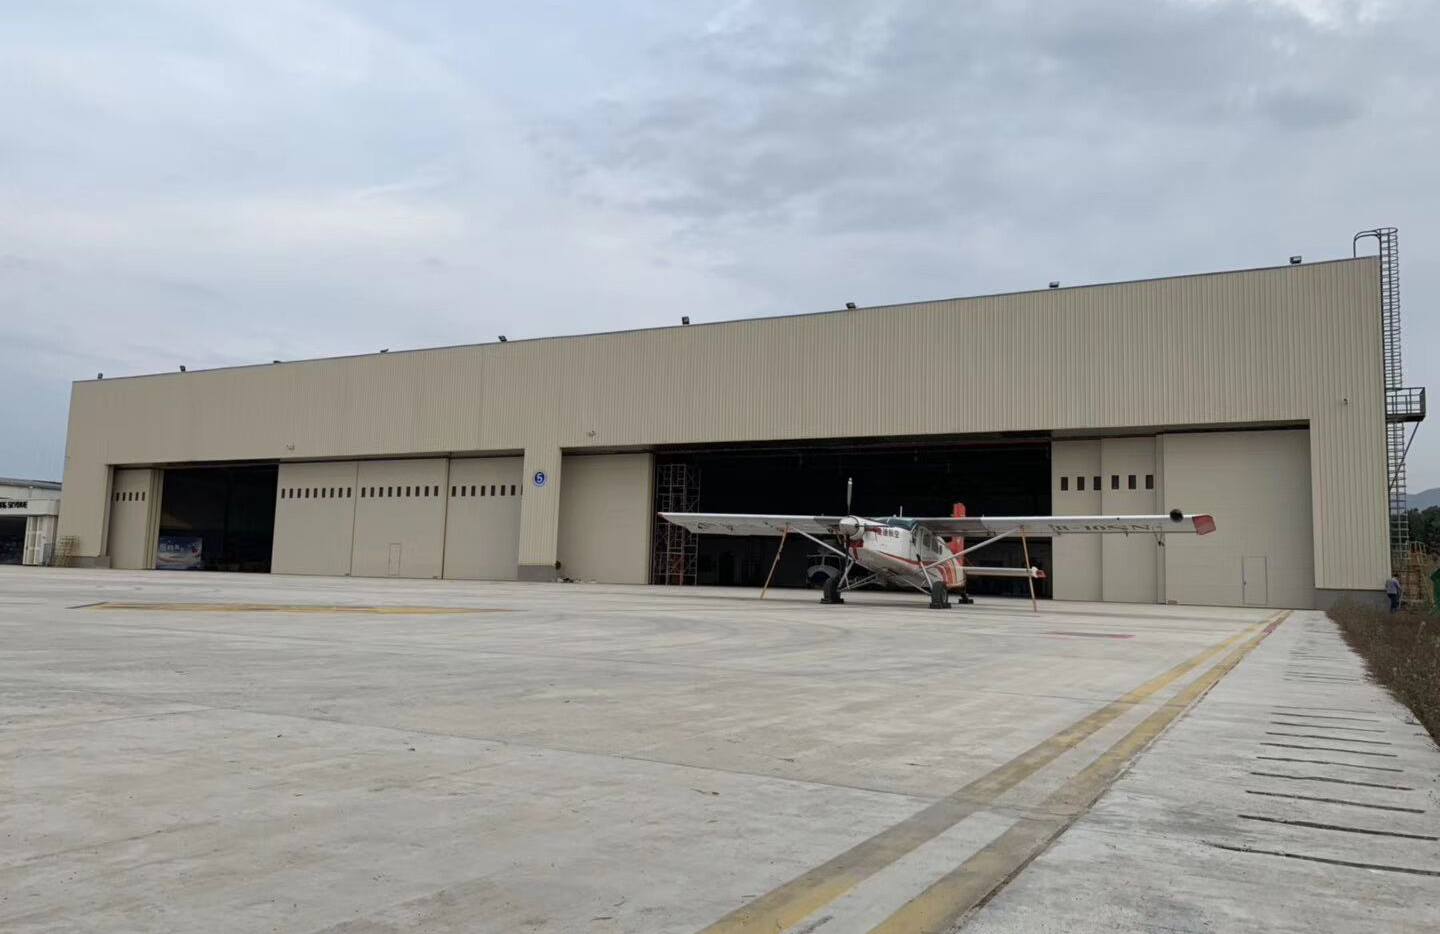 Aircraft Hangar Project in Jordan